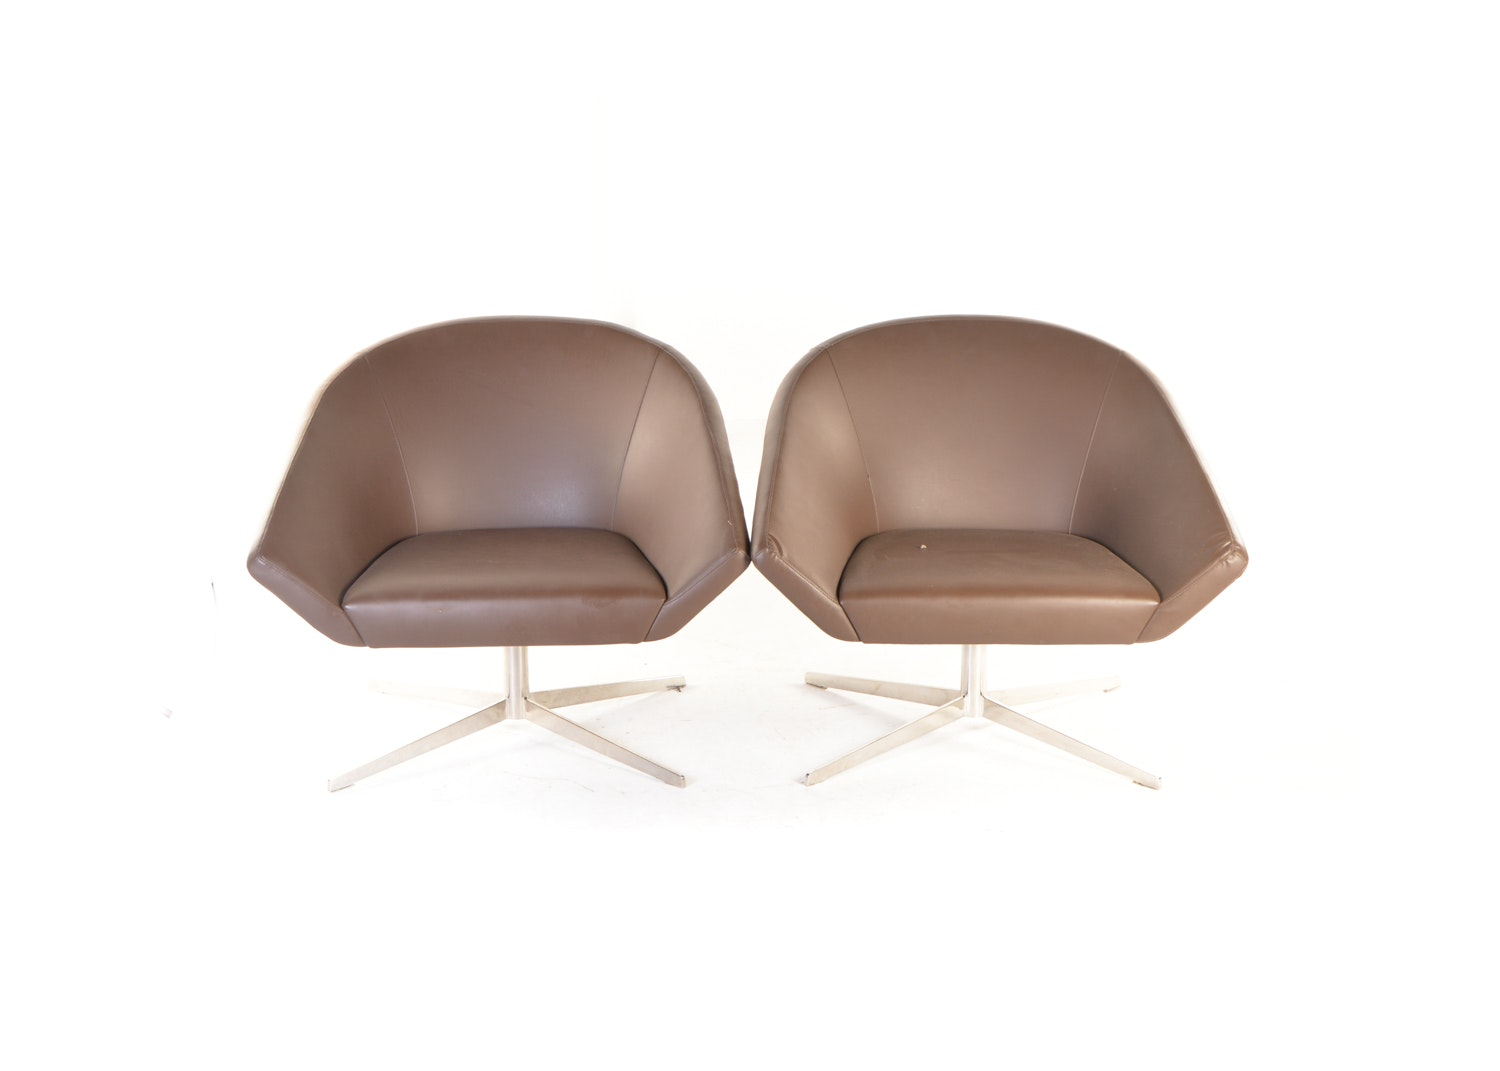 Mid Century Modern Jeffrey Bernett for Bernhardt Leather Remy Lounge Chairs